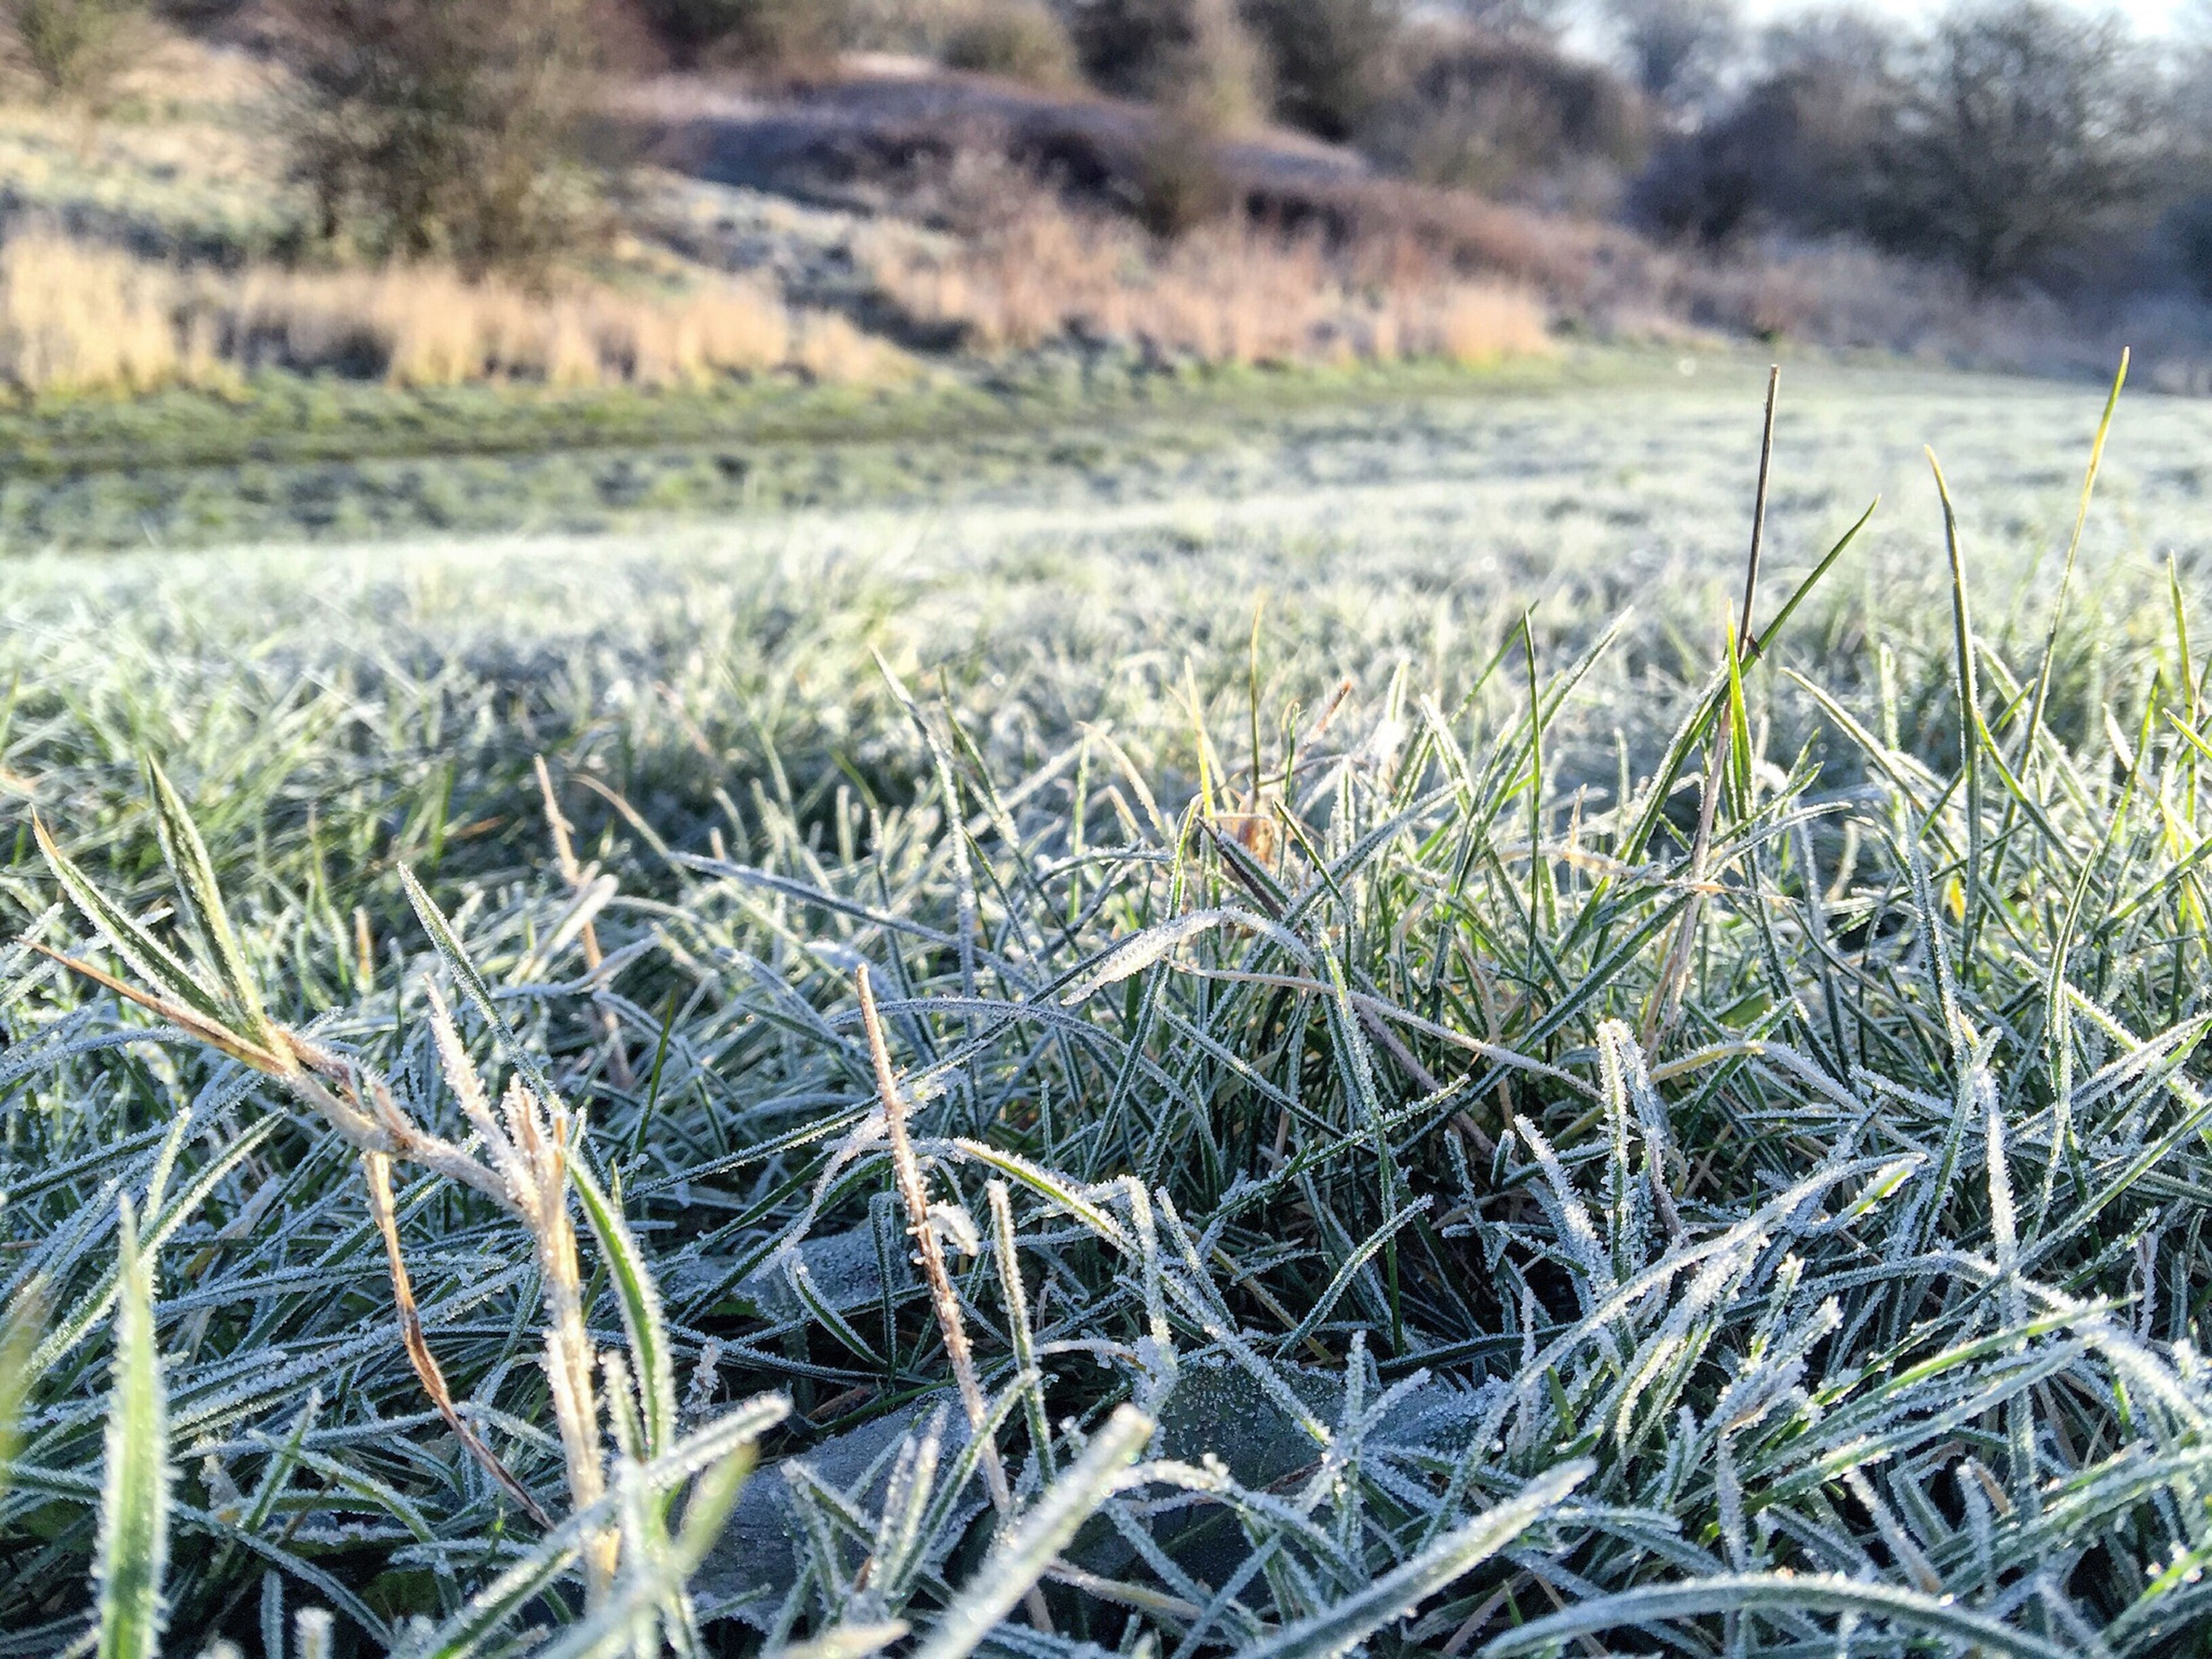 A beautiful, cold morning this morning. Walk Taking Photos Sunny Day England Cold Britishweather Morning Grass No People